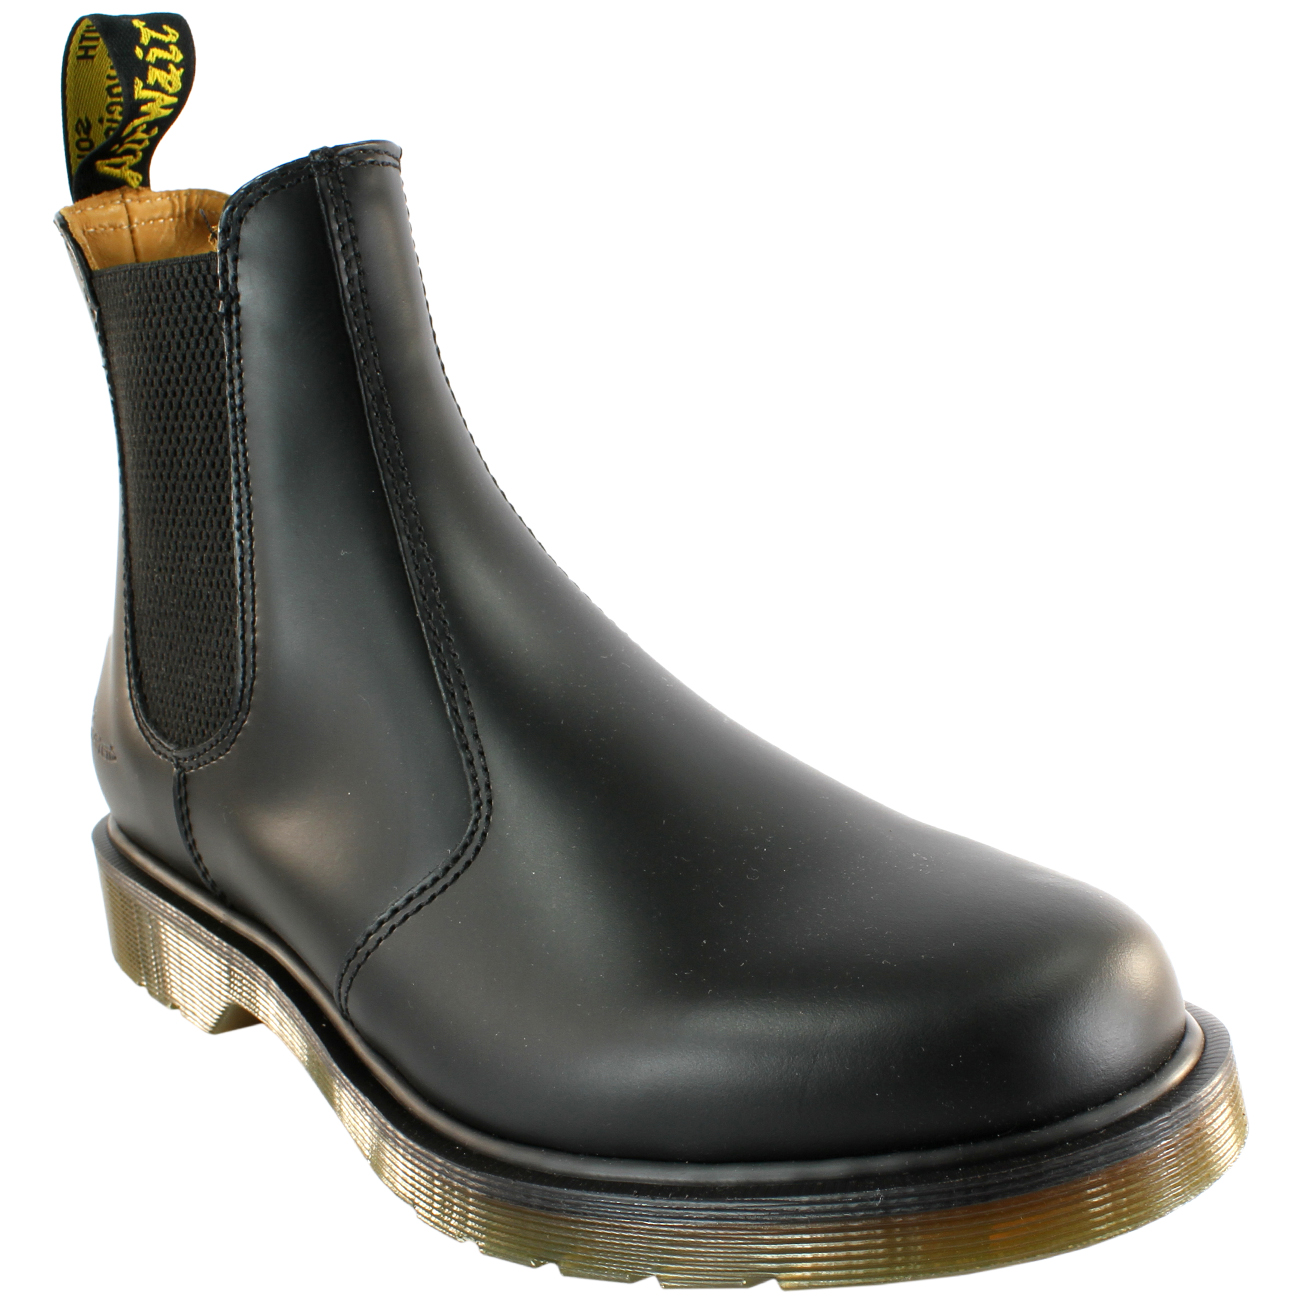 Mens Dr Martens 2976 Classic Chelsea Style Leather Ankle High Boot ... f0538a538